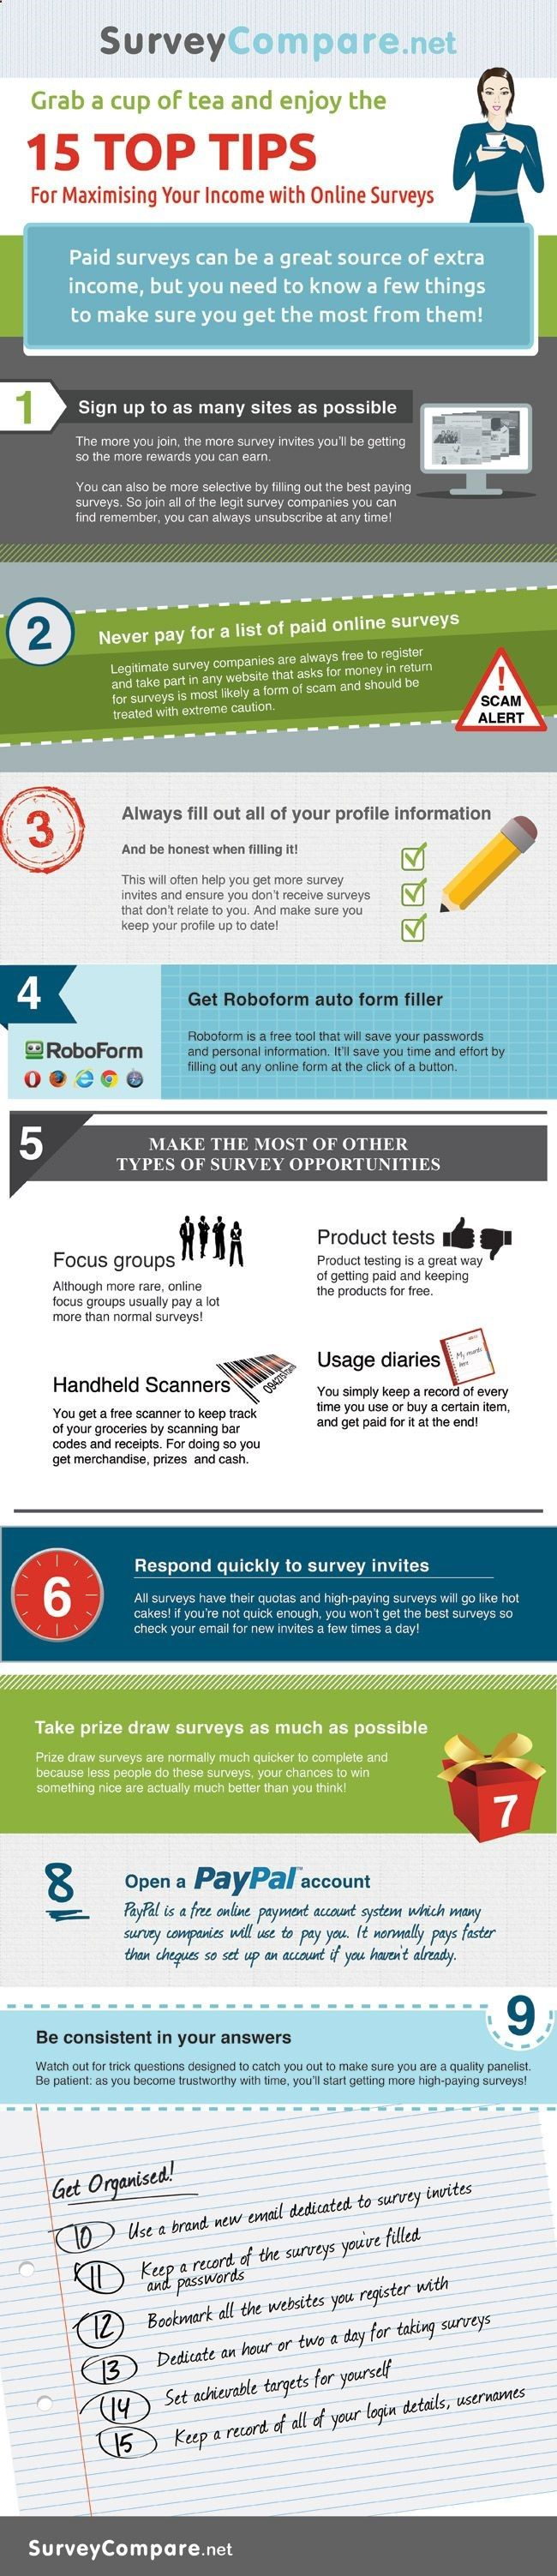 15 Tips to Earning More With Paid Surveys - If you are new to online survey world then this infographic will help you to get started and point you to right directions on how to find legitimate survey companies and how to maximize your income from taking surveys.